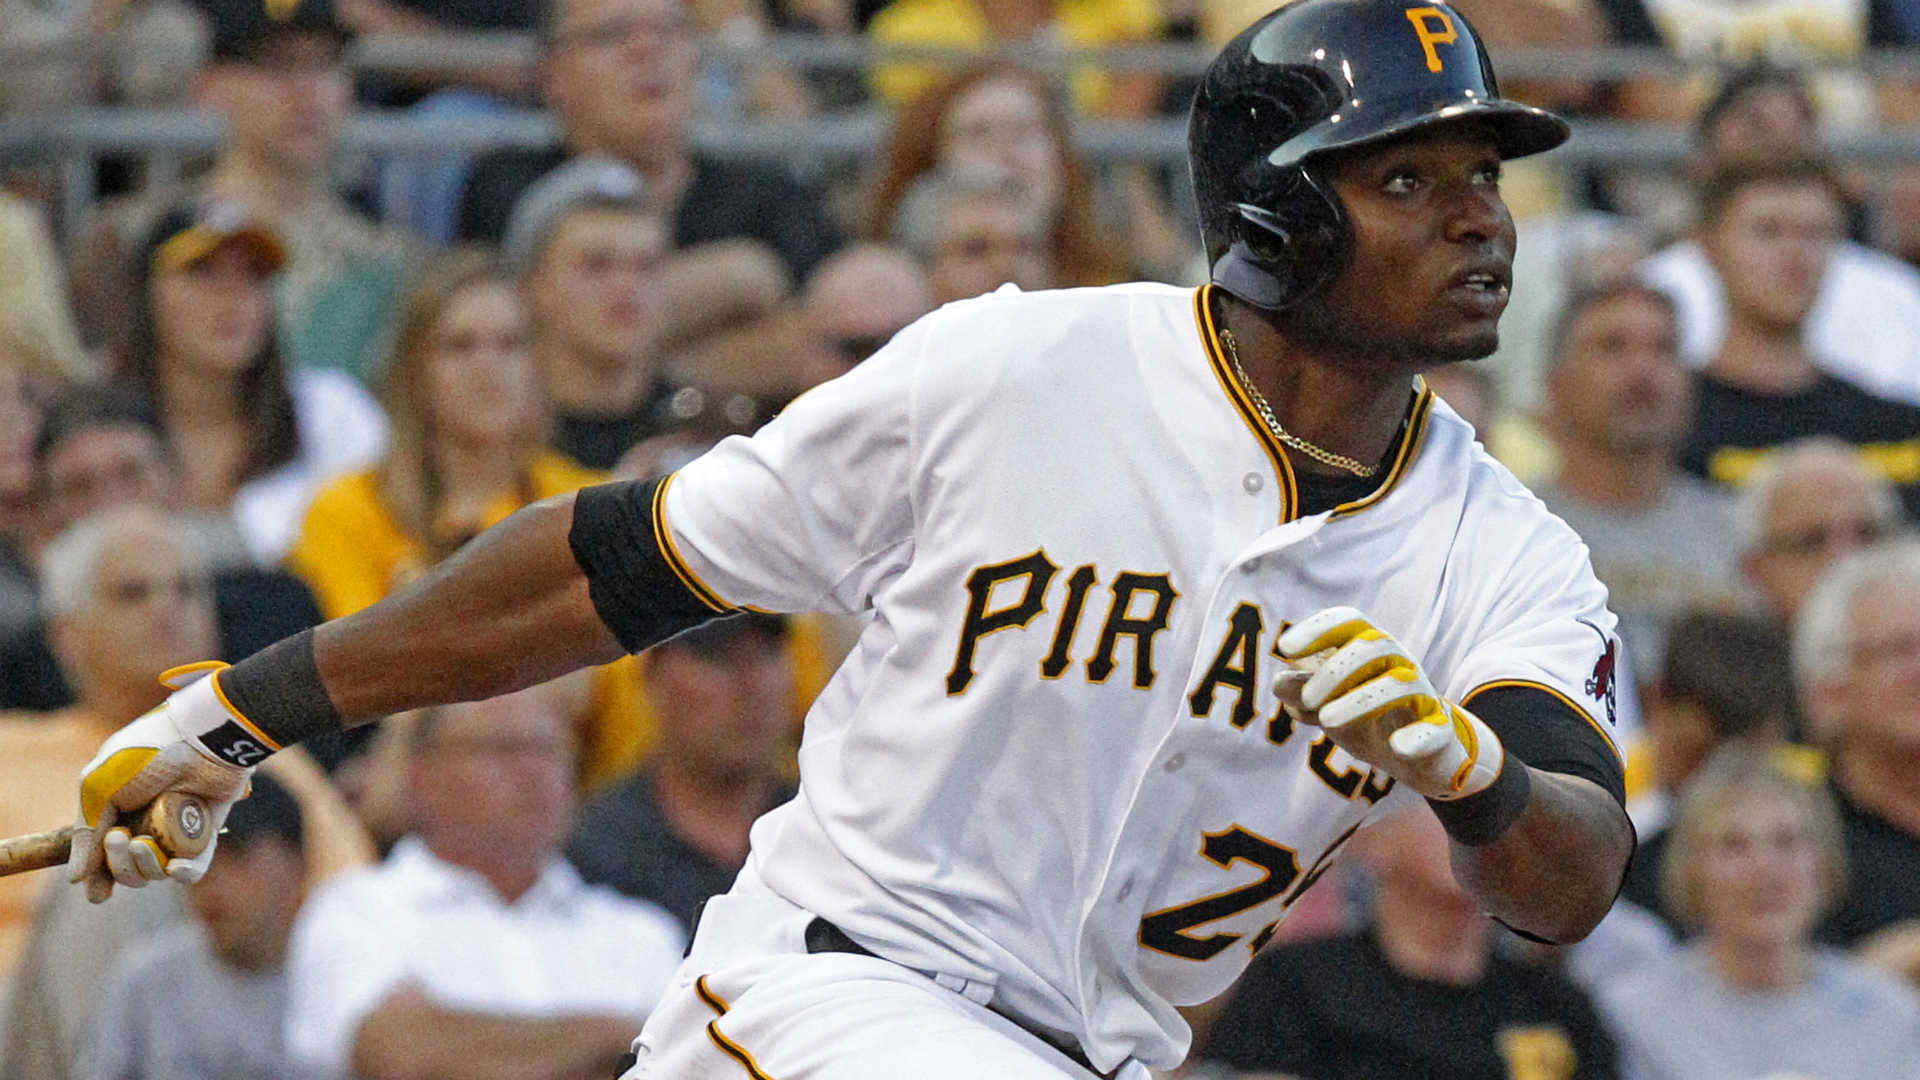 Gregory Polanco-070214-AP-FTR.jpg